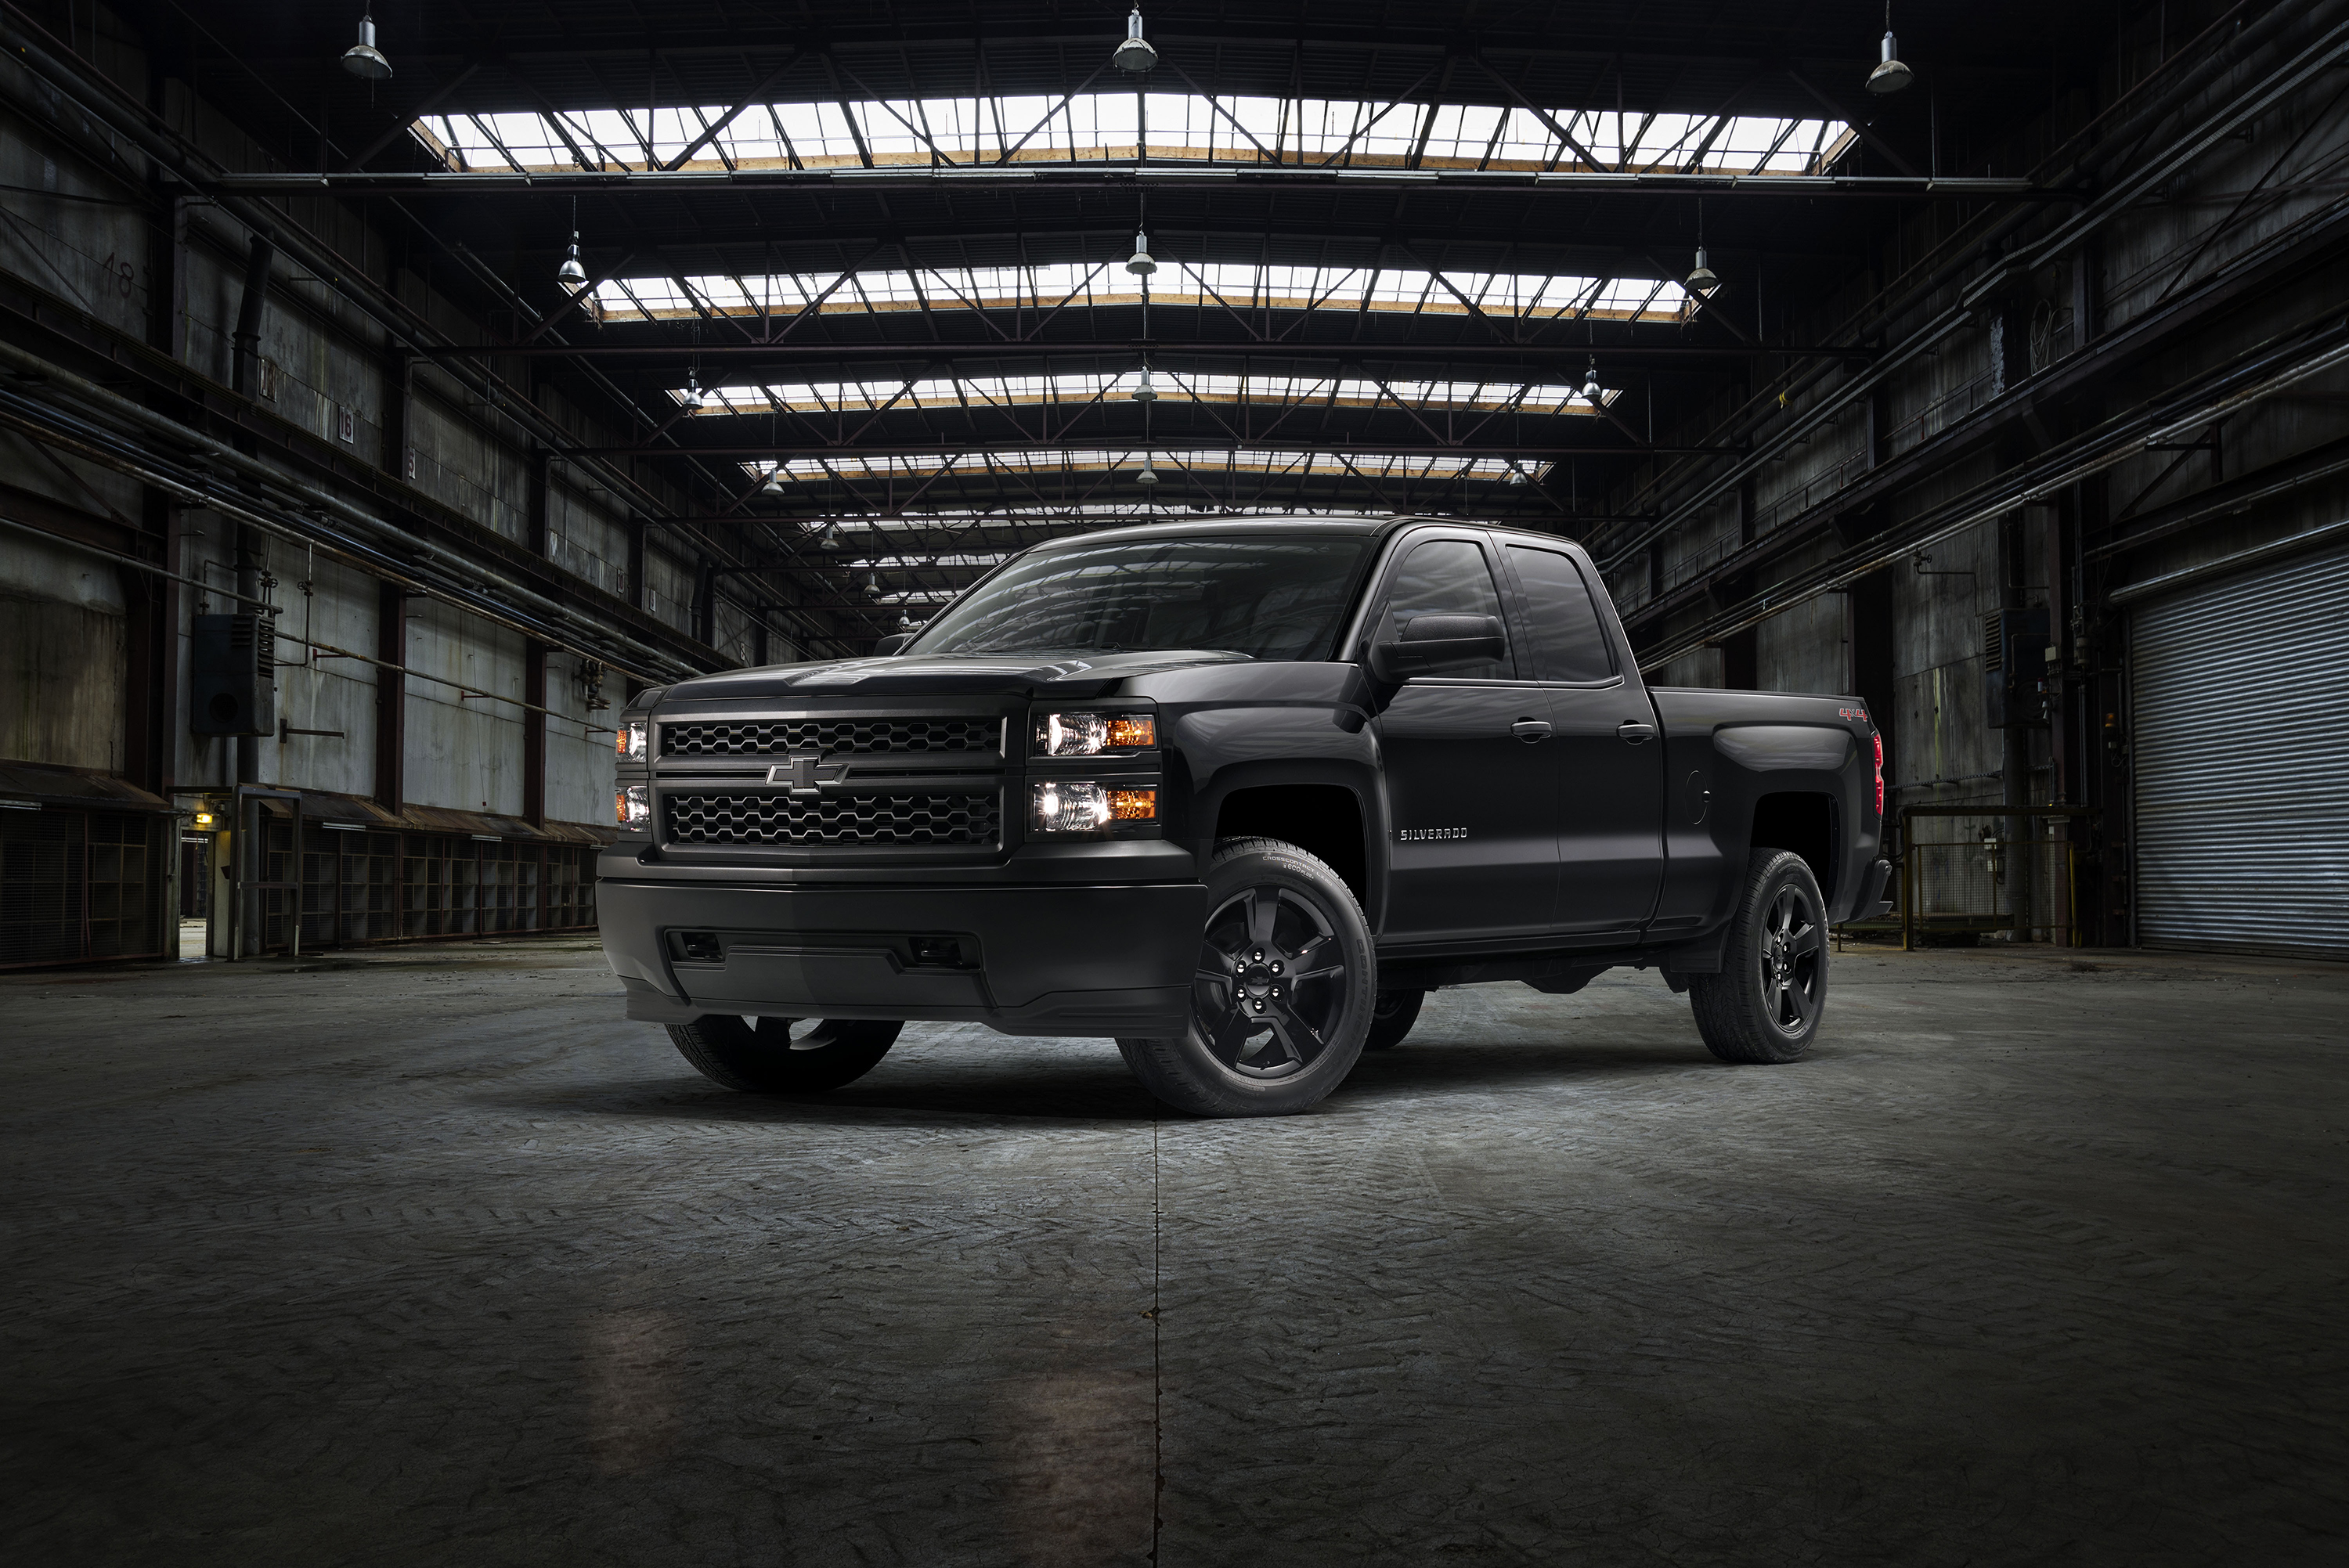 Chevrolet Silverado Work Trucks Get Blacked Out